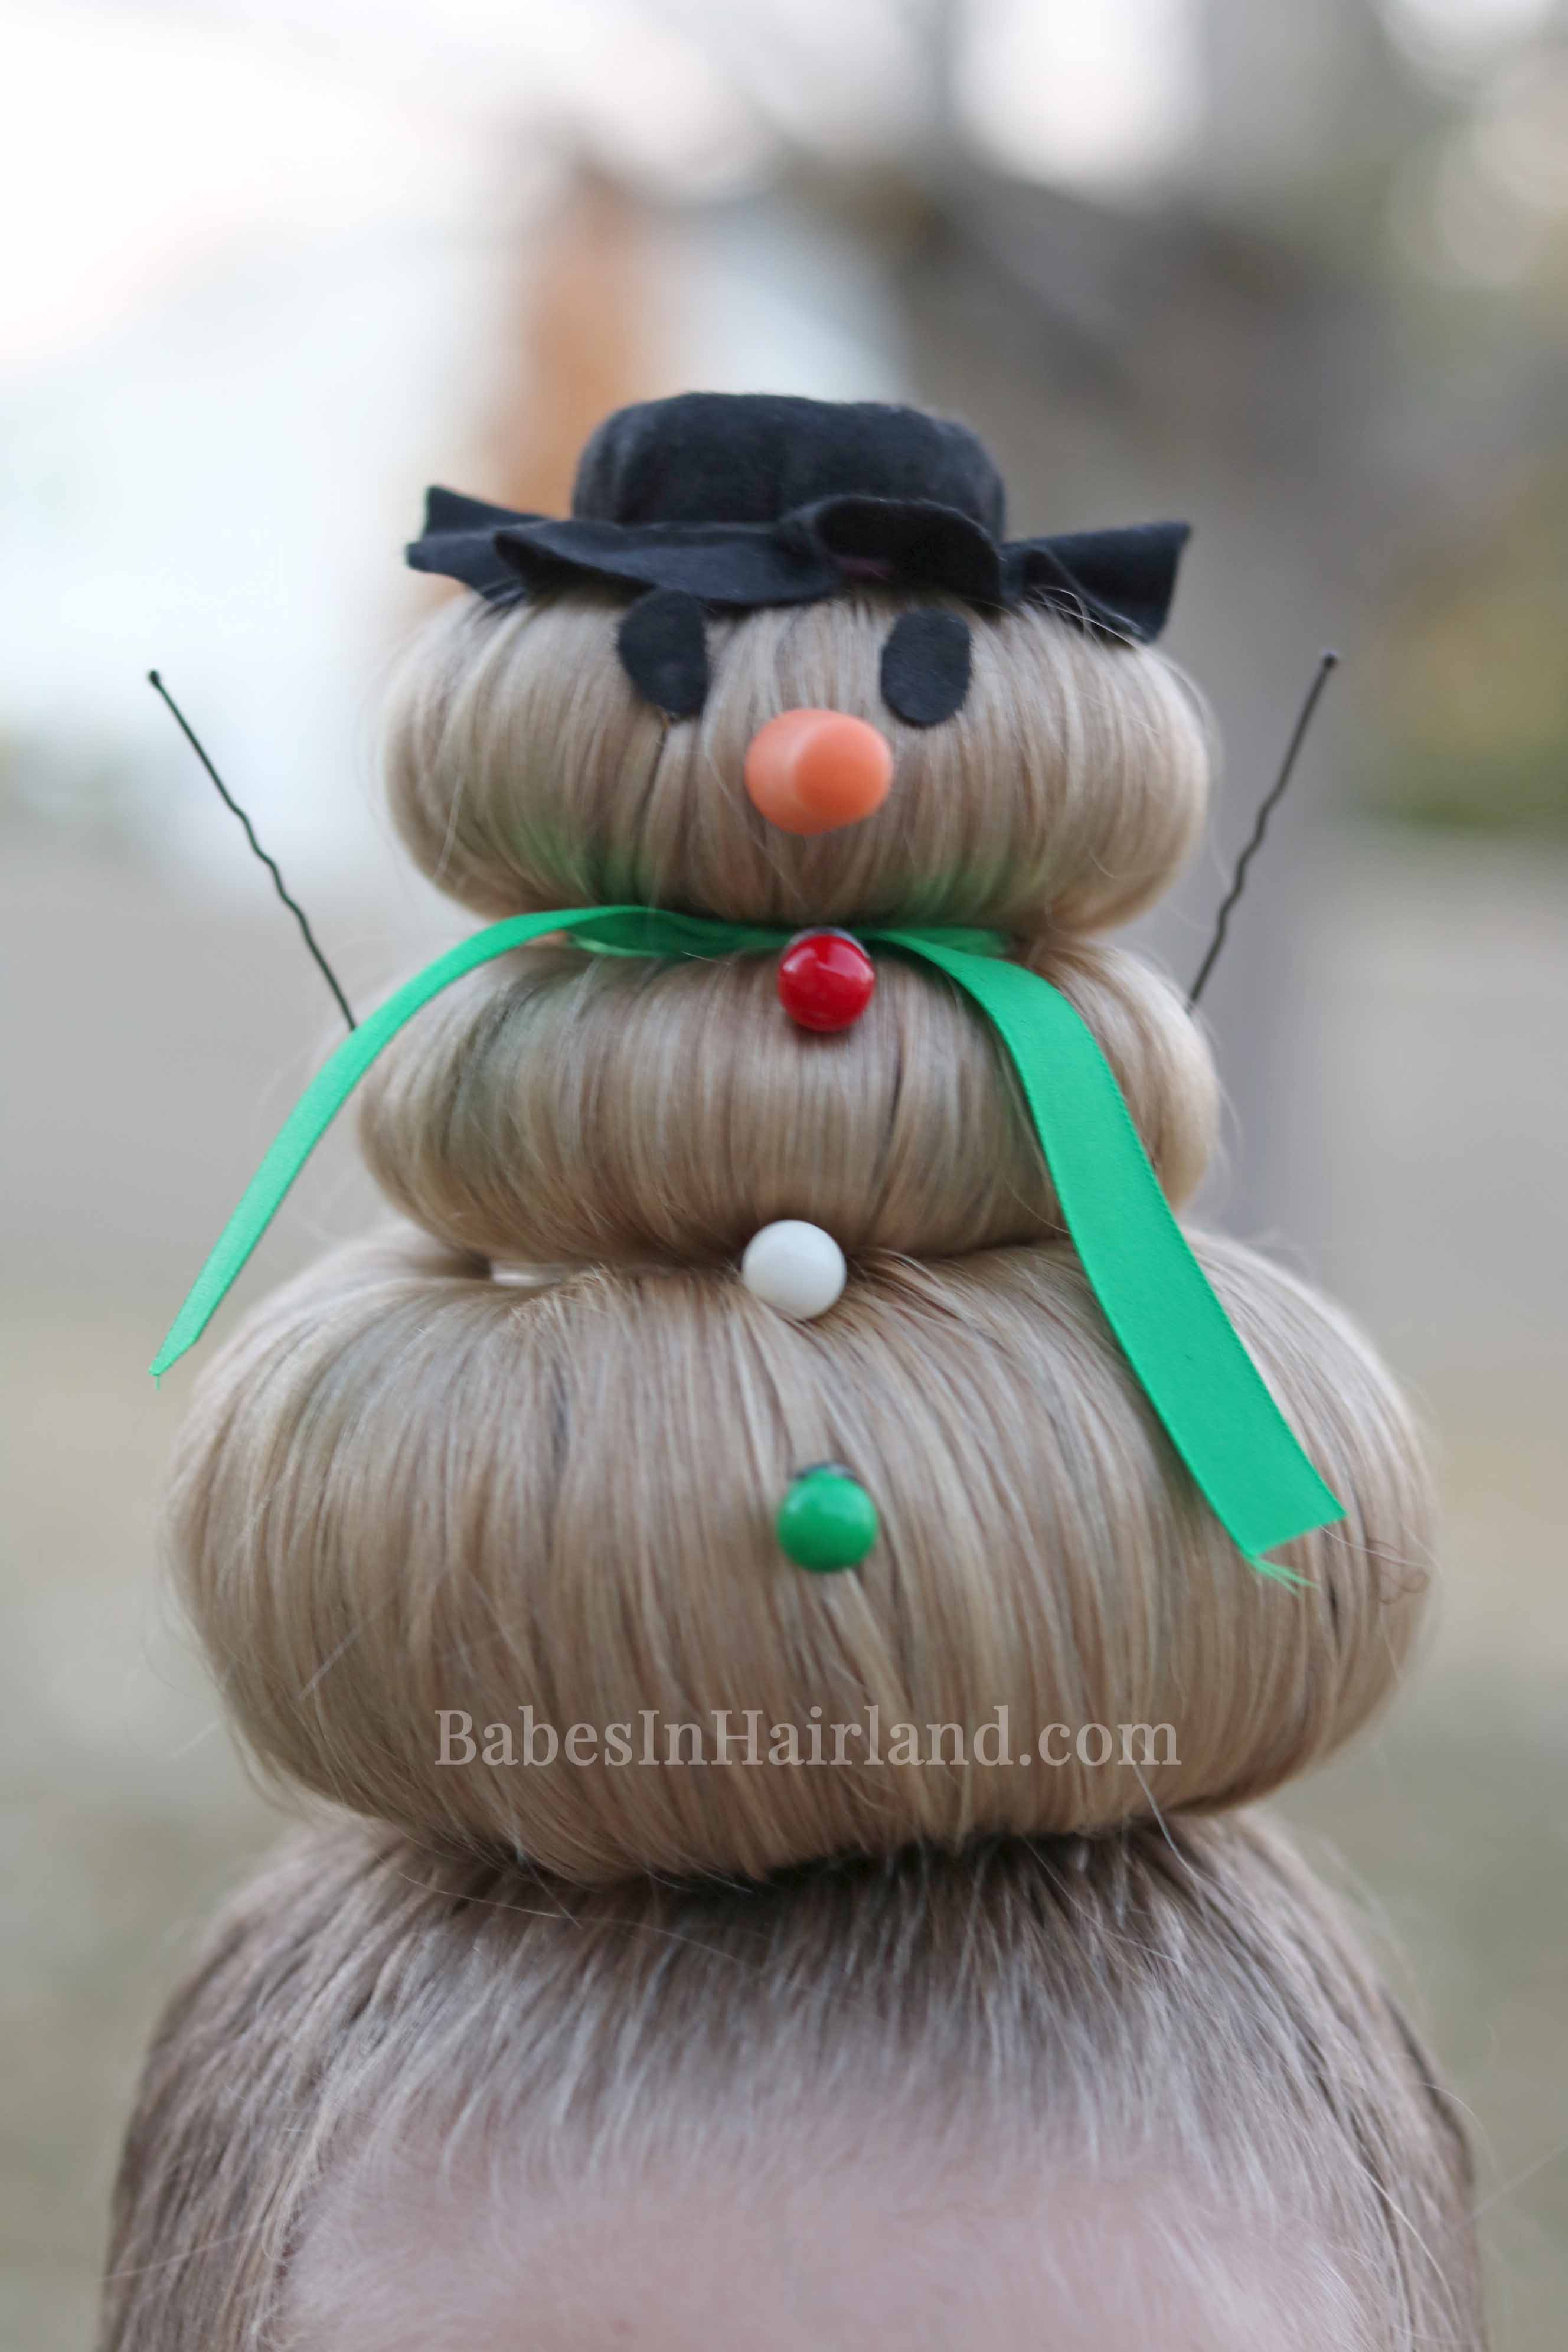 Snowman Hairstyle For Crazy Hair Day Or Christmas